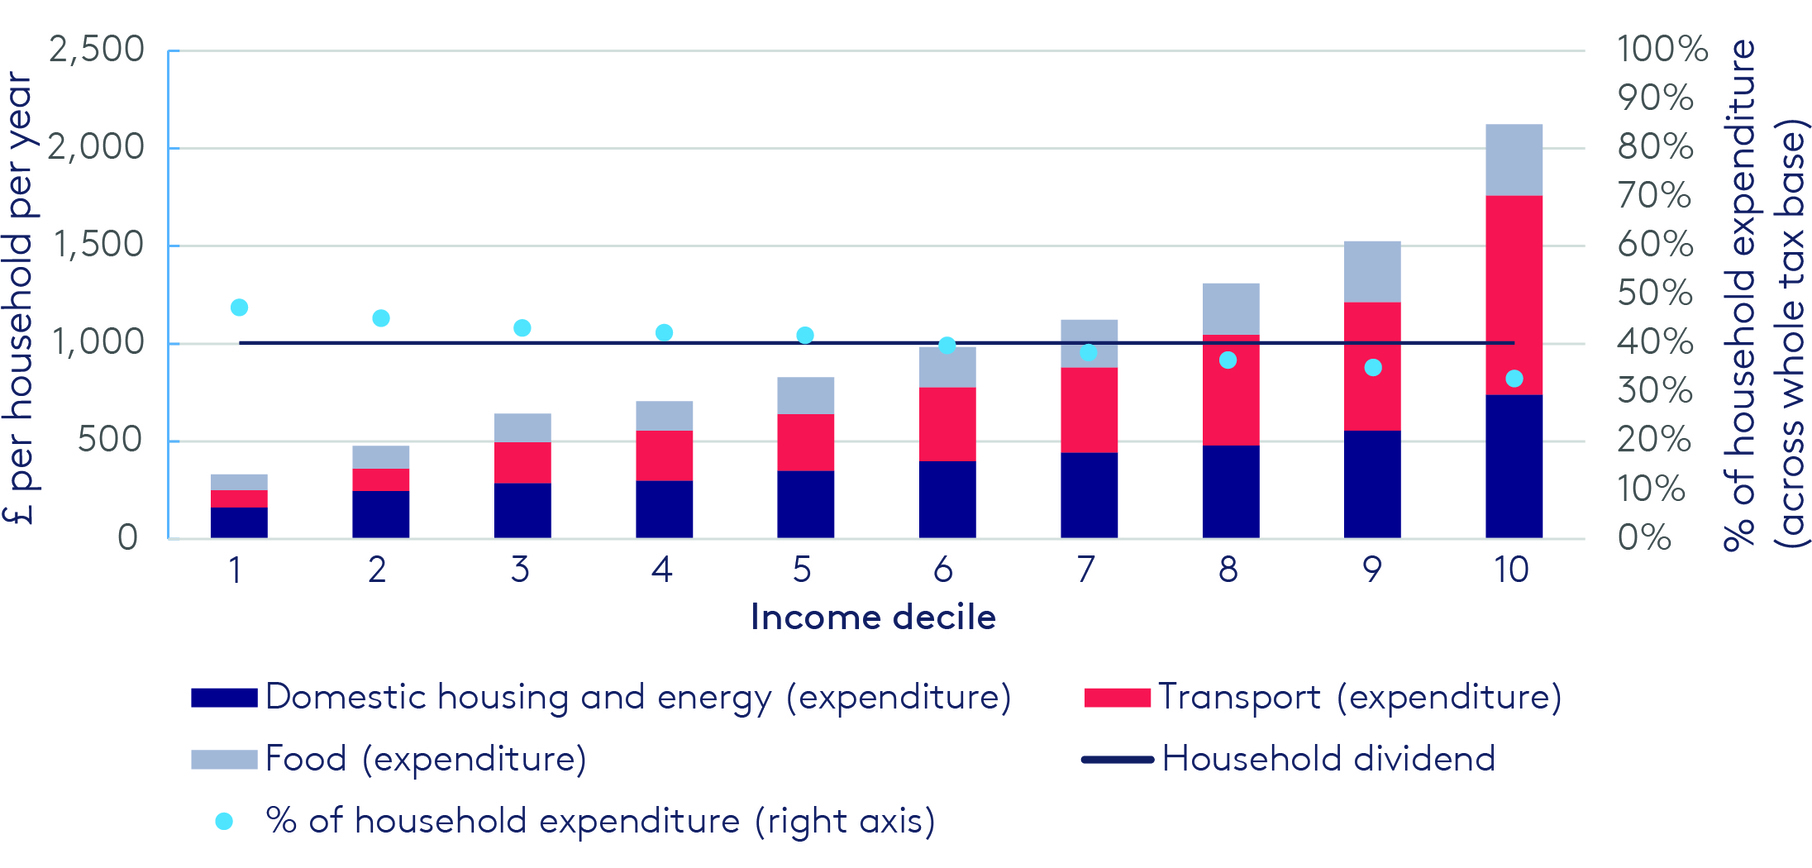 Illustrative tax payments and revenues by income decile, UK